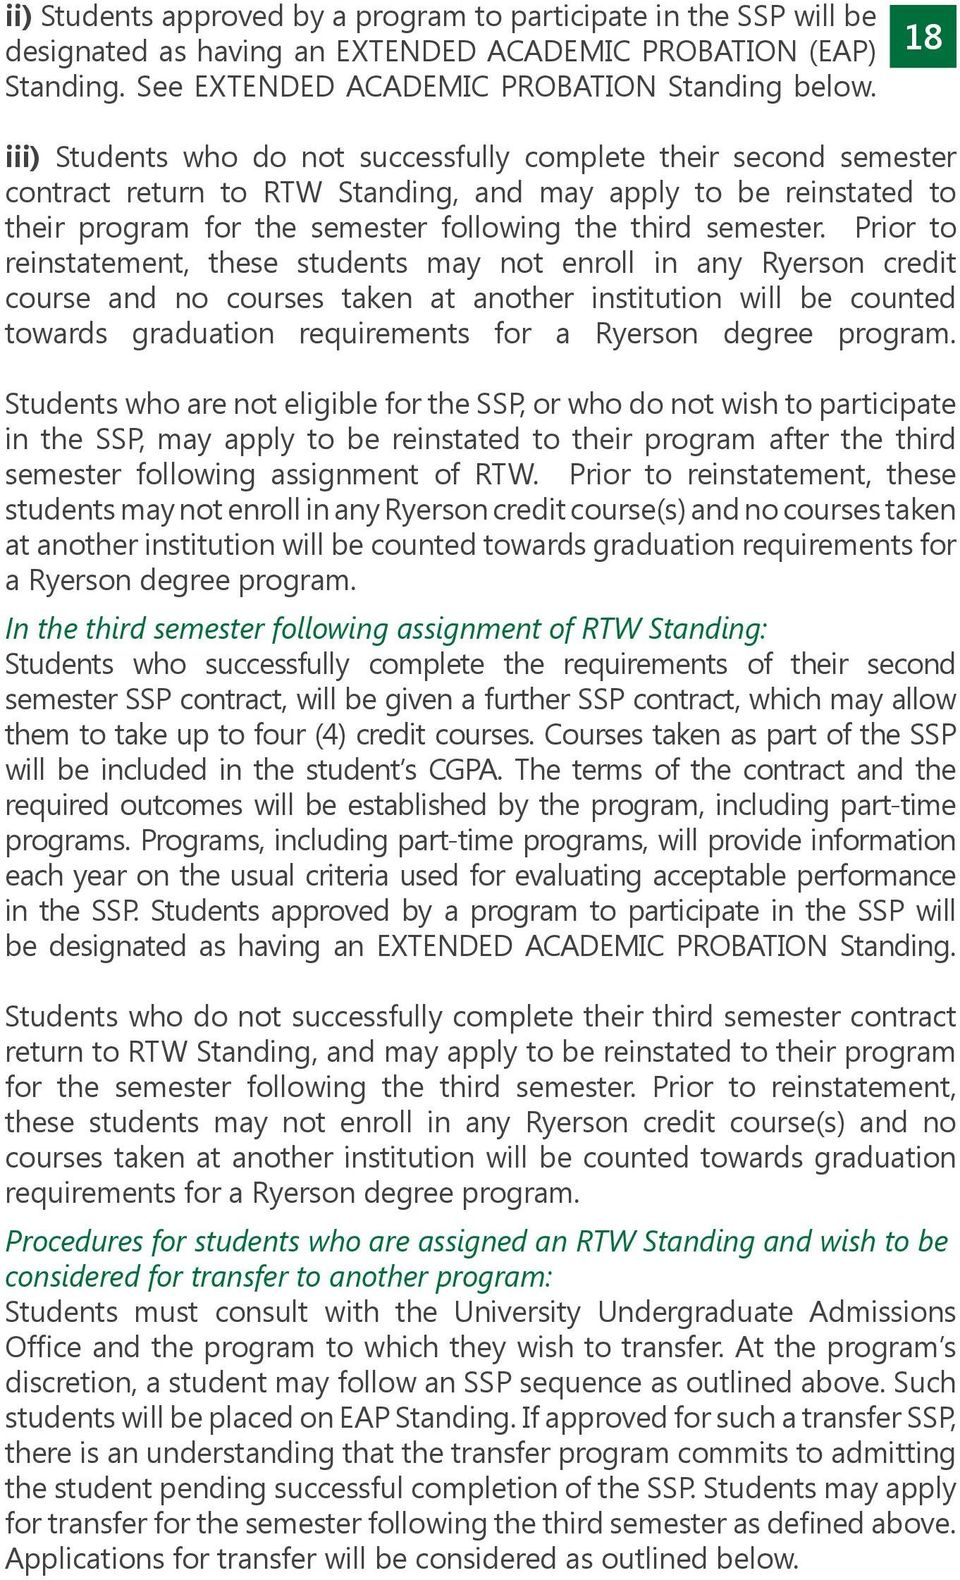 Prior to reinstatement, these students may not enroll in any Ryerson credit course and no courses taken at another institution will be counted towards graduation requirements for a Ryerson degree